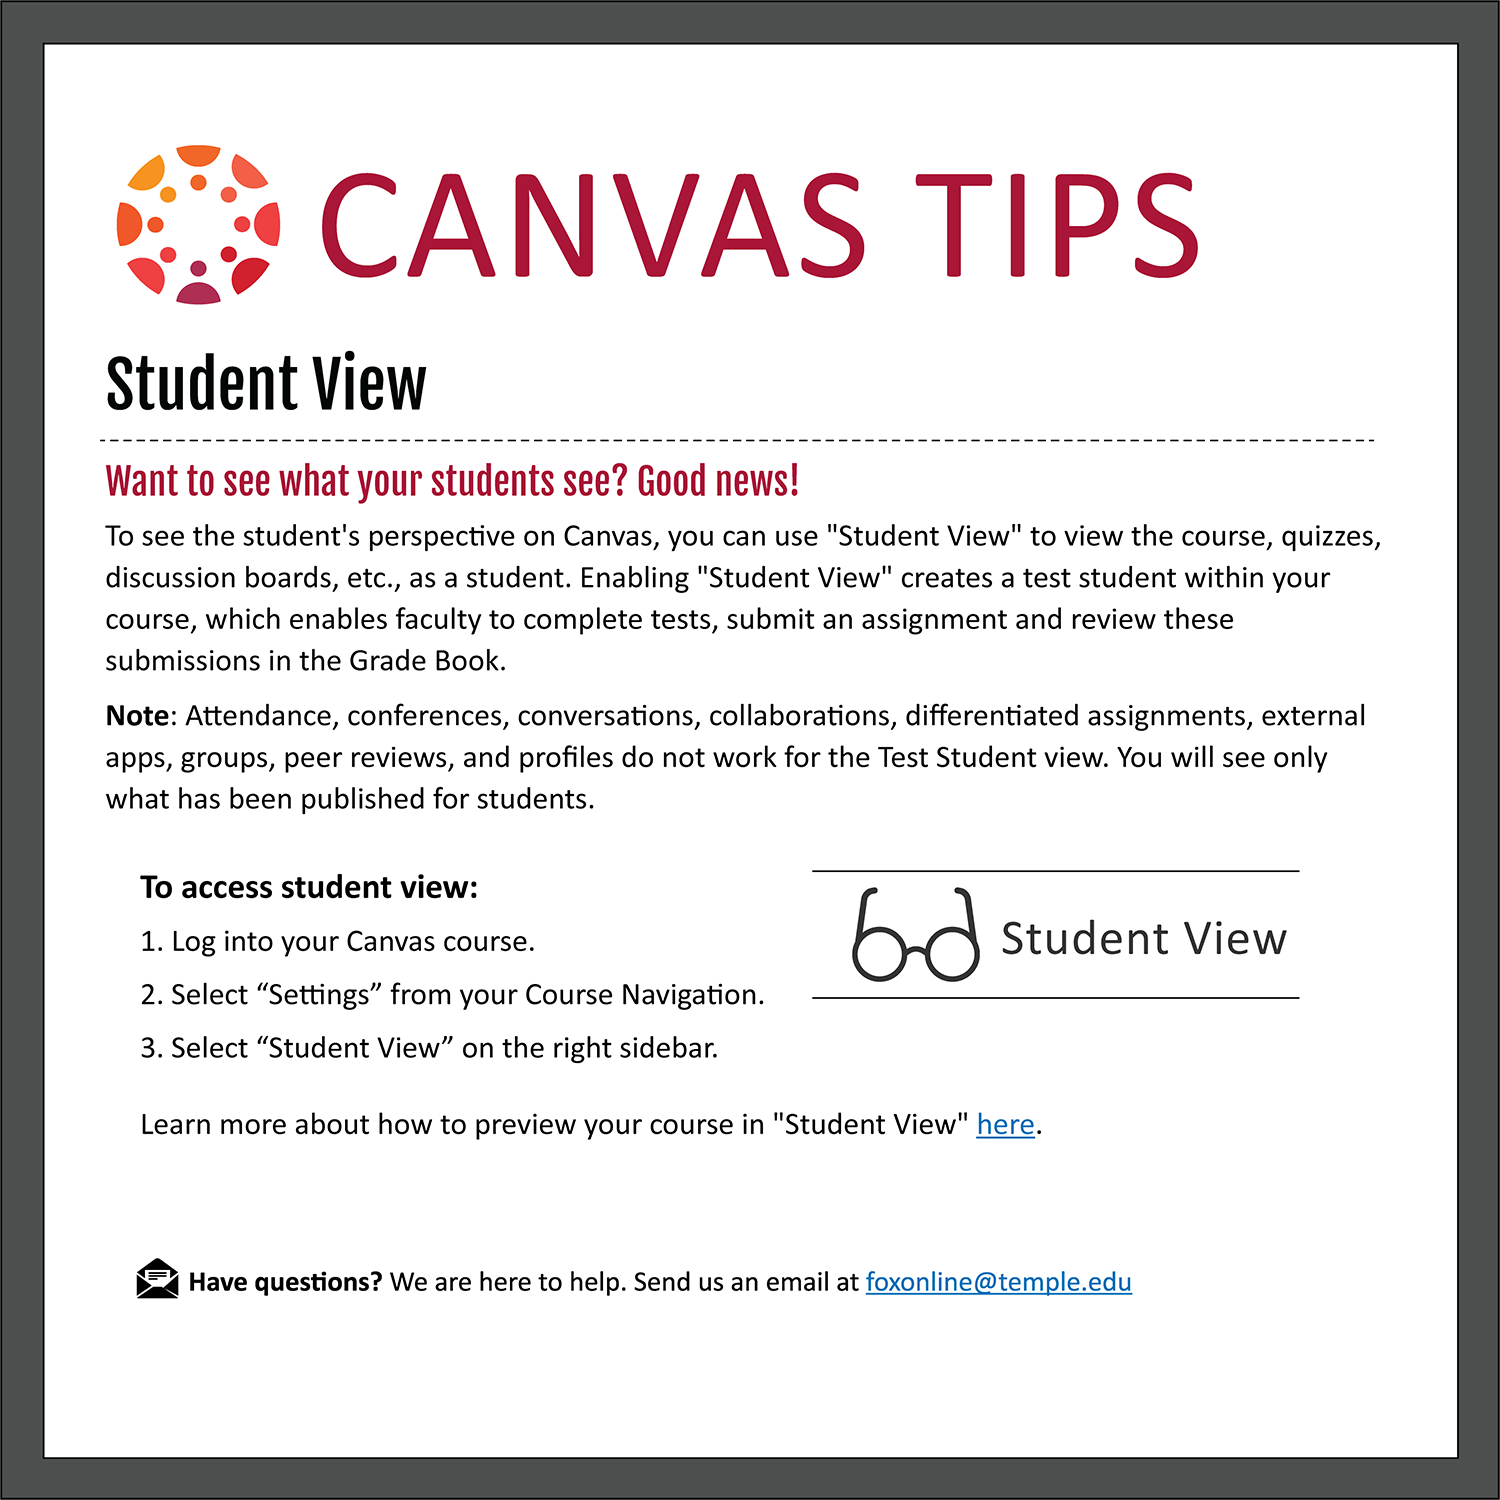 Tip 6: Student View